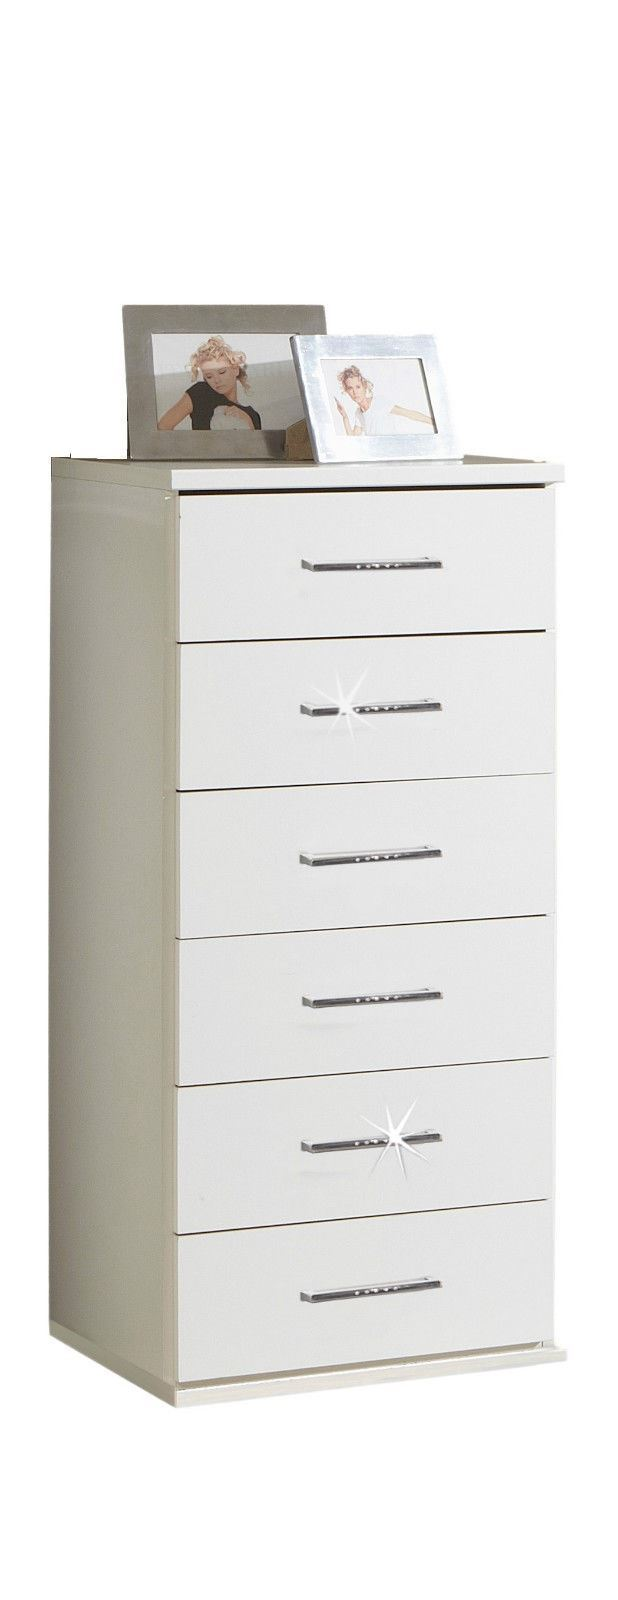 Bijoux German 6 Tall Narrow Chest of Drawers White Crystal Rhinestone Bling